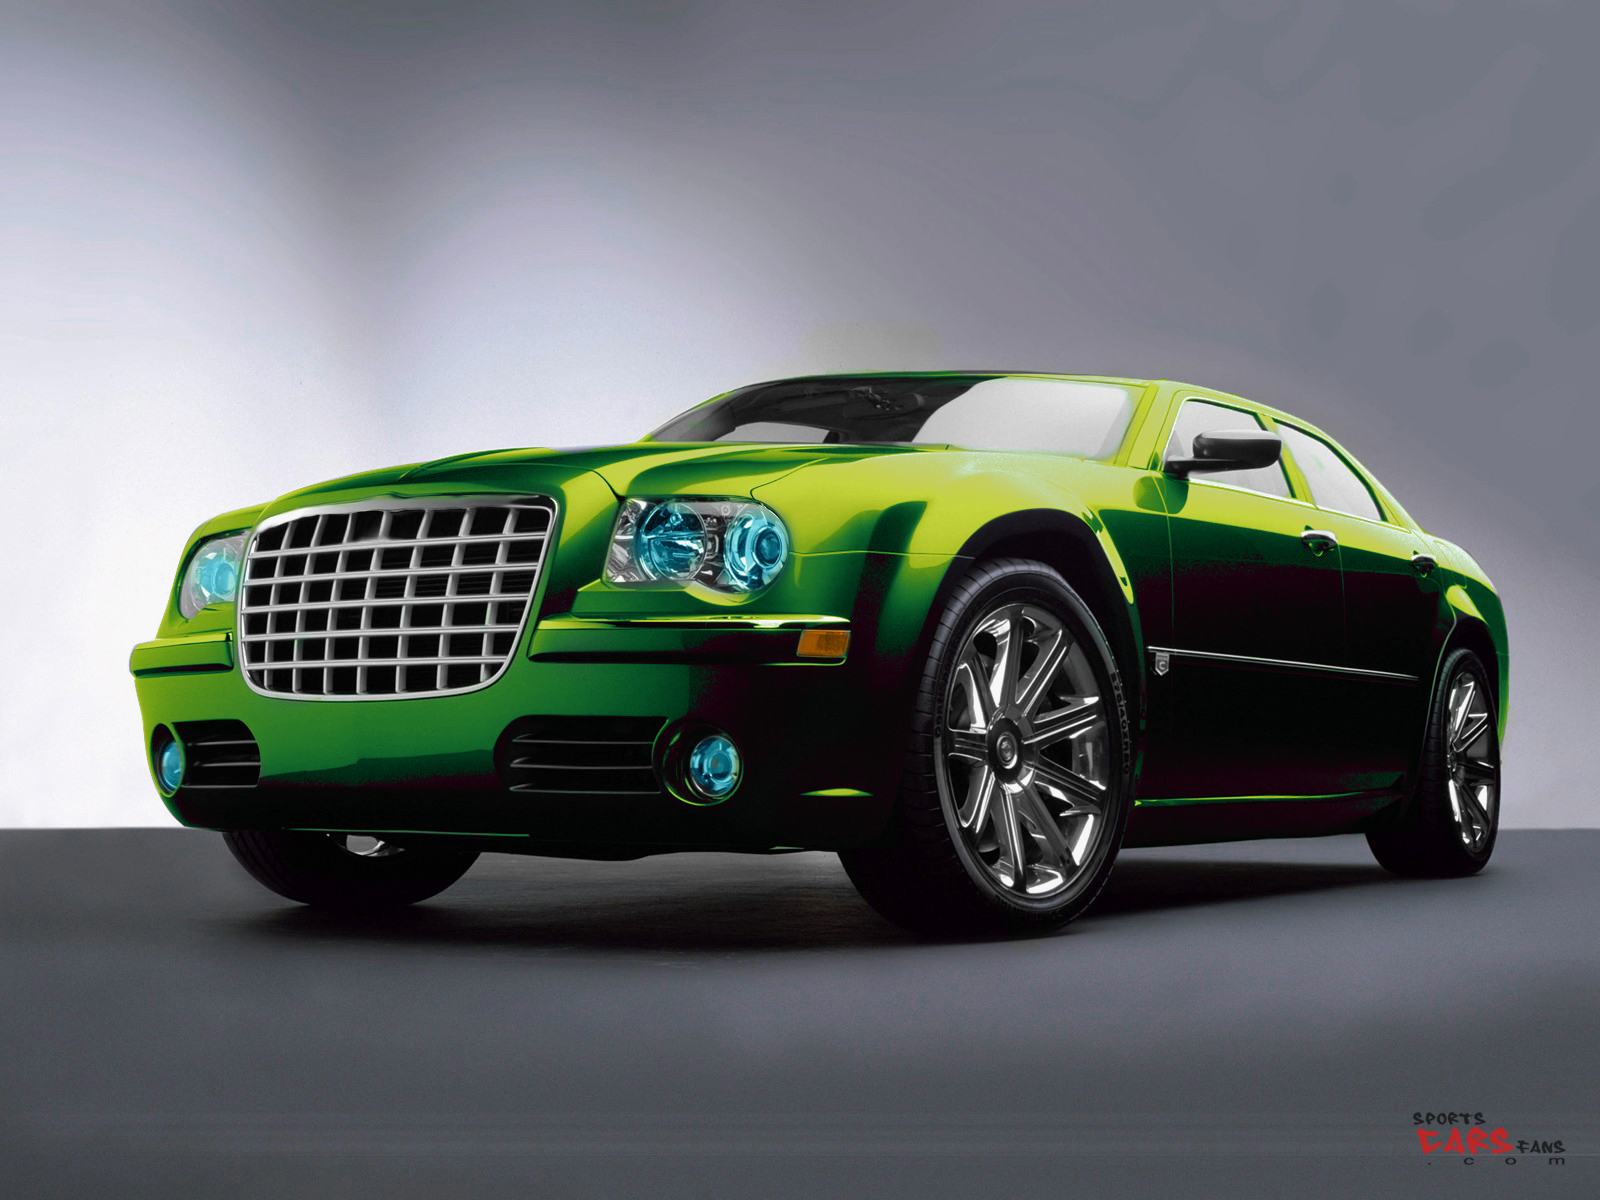 Cool cars wallpapersCool cars picturesCool cars imagesCool cars 1600x1200